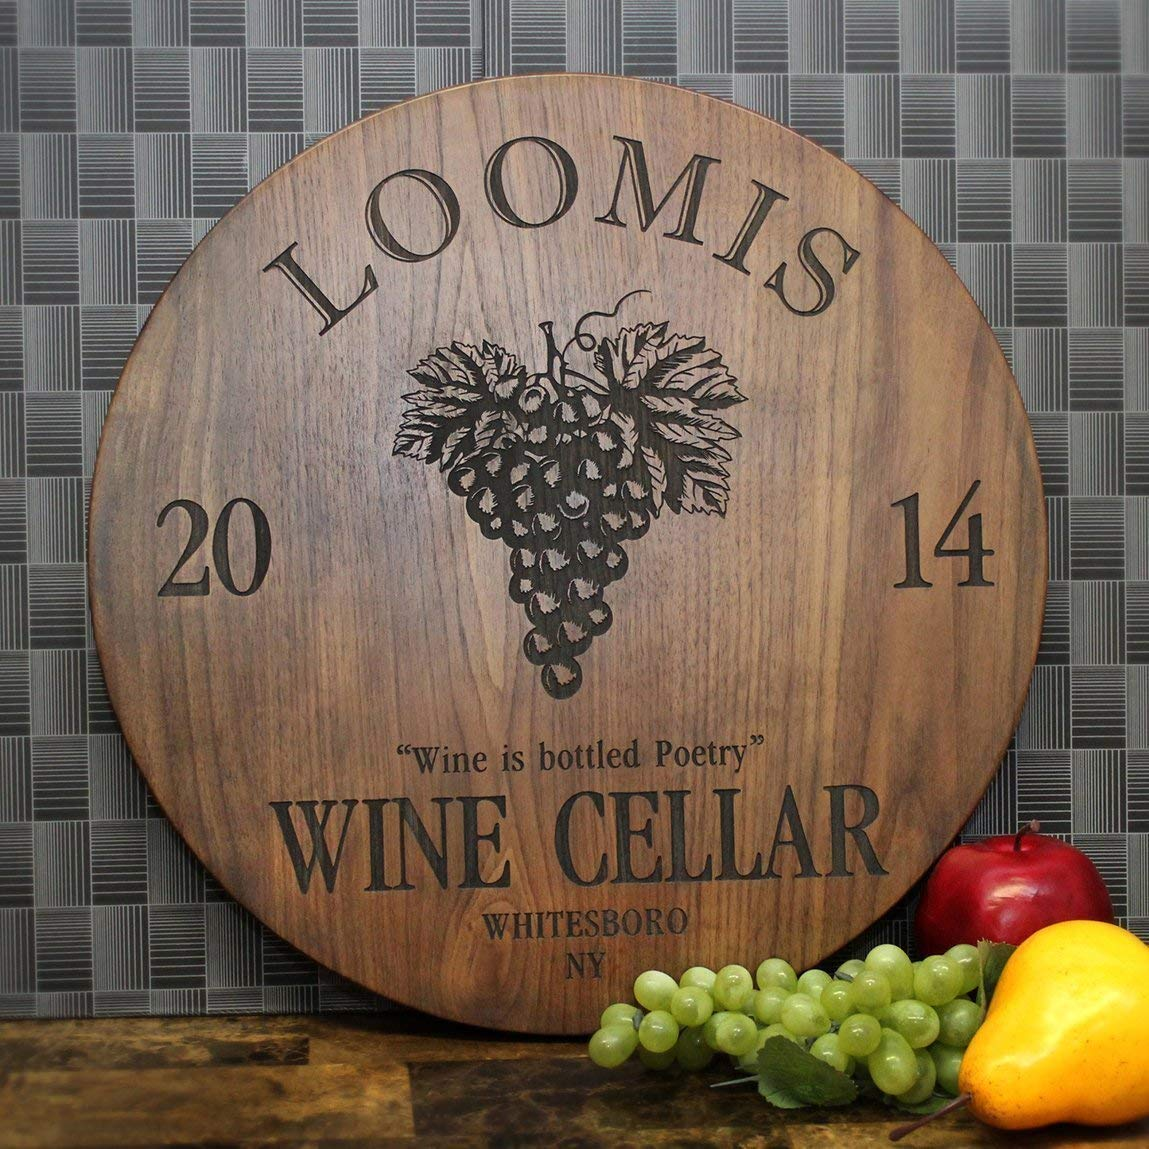 Personalized 15' Hardwood Wine Cellar Sign - Custom Wood Sign, Walnut, Cherry, Maple, Sapele, Housewarming, Wedding, Wine Lover Gift. #305